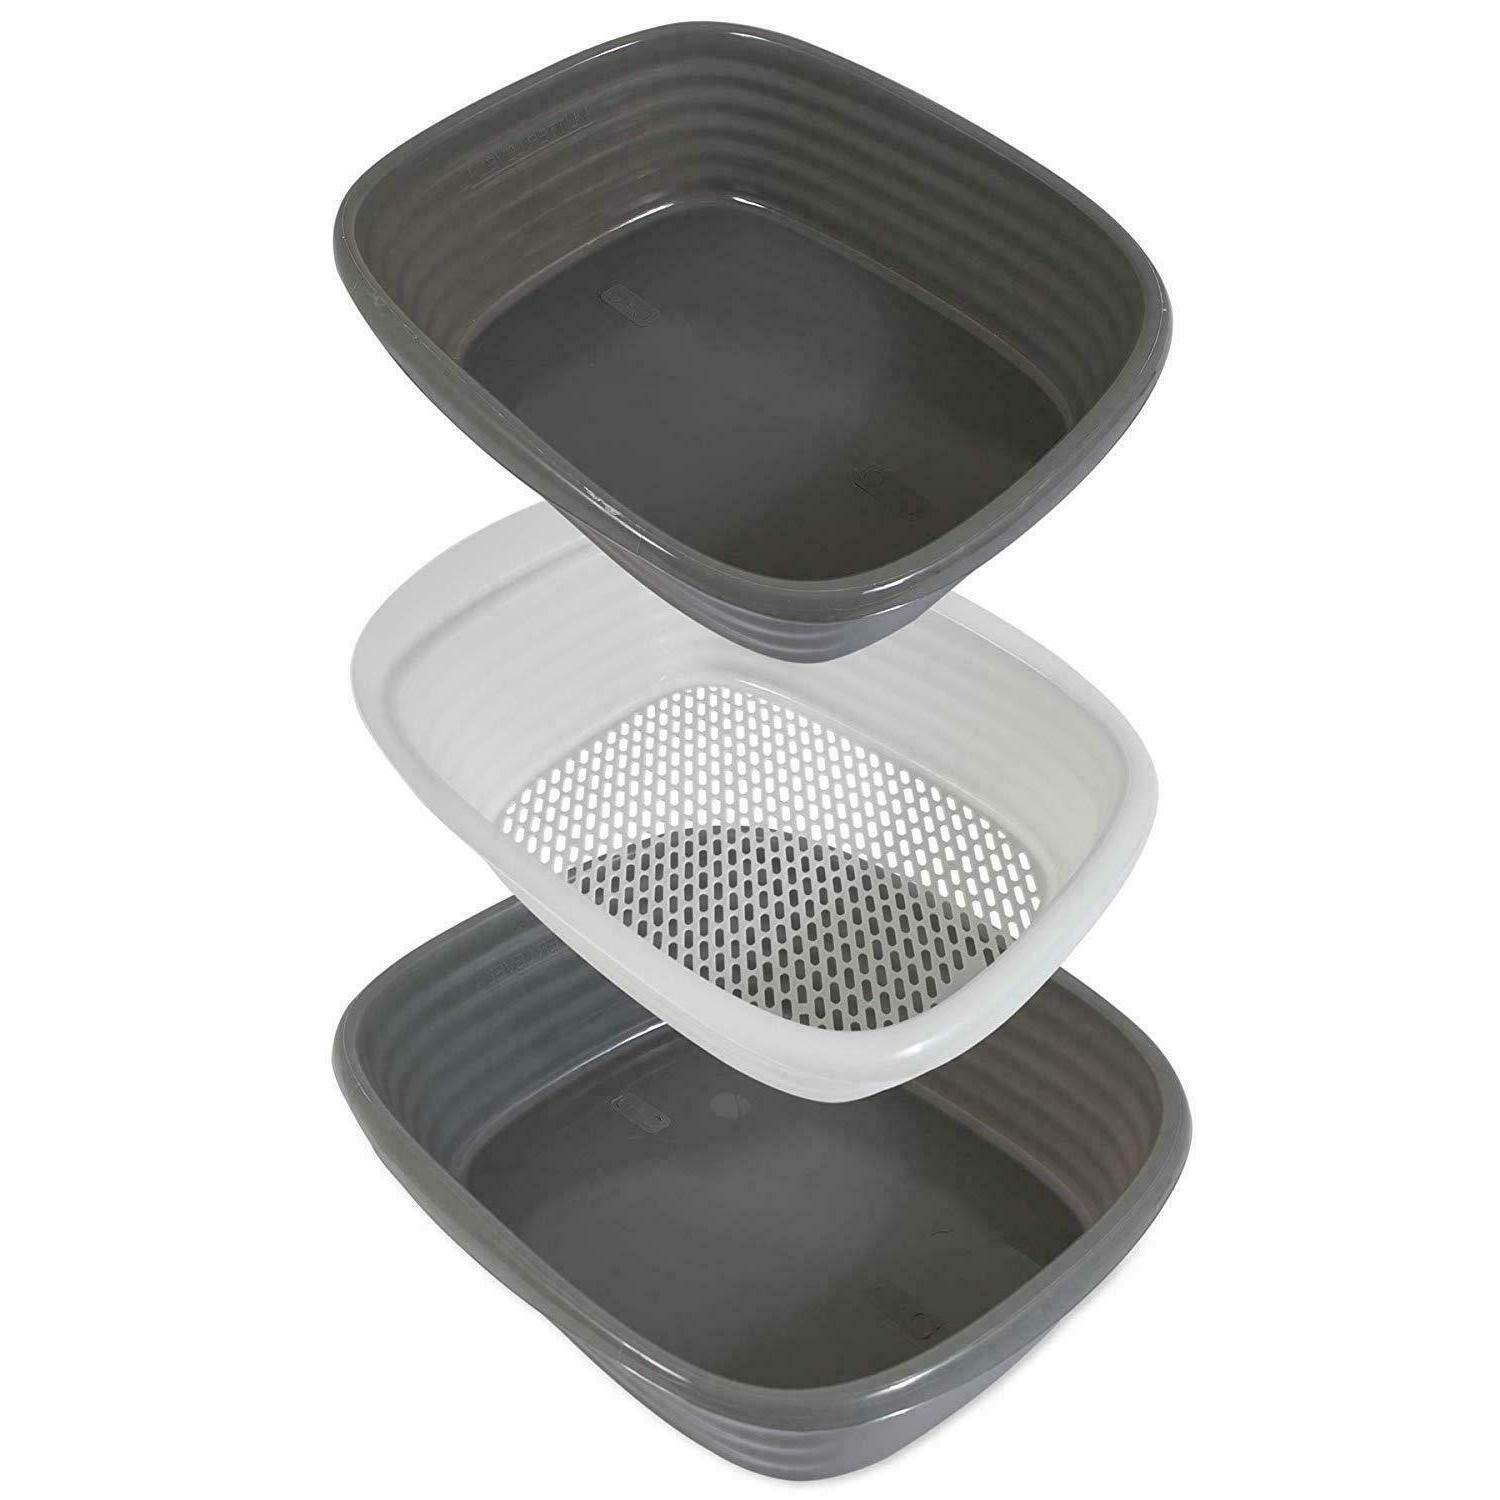 SIFTING CAT LITTER PAN Large Part Cleaning Tray